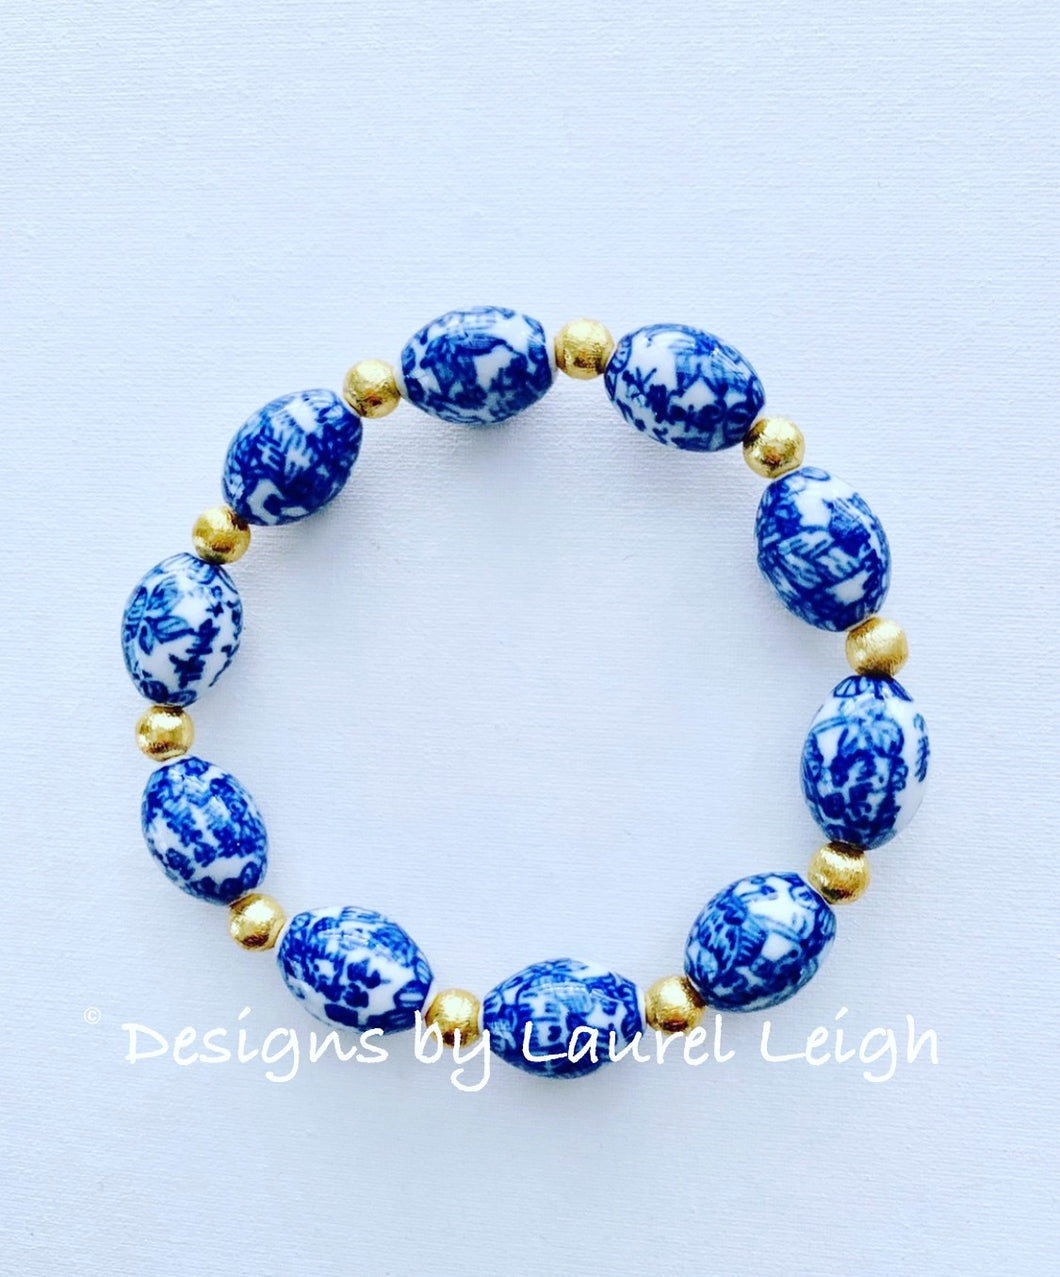 Blue and White Chinoiserie Floral Calligraphy Vintage Bead Statement Bracelet - Ginger jar